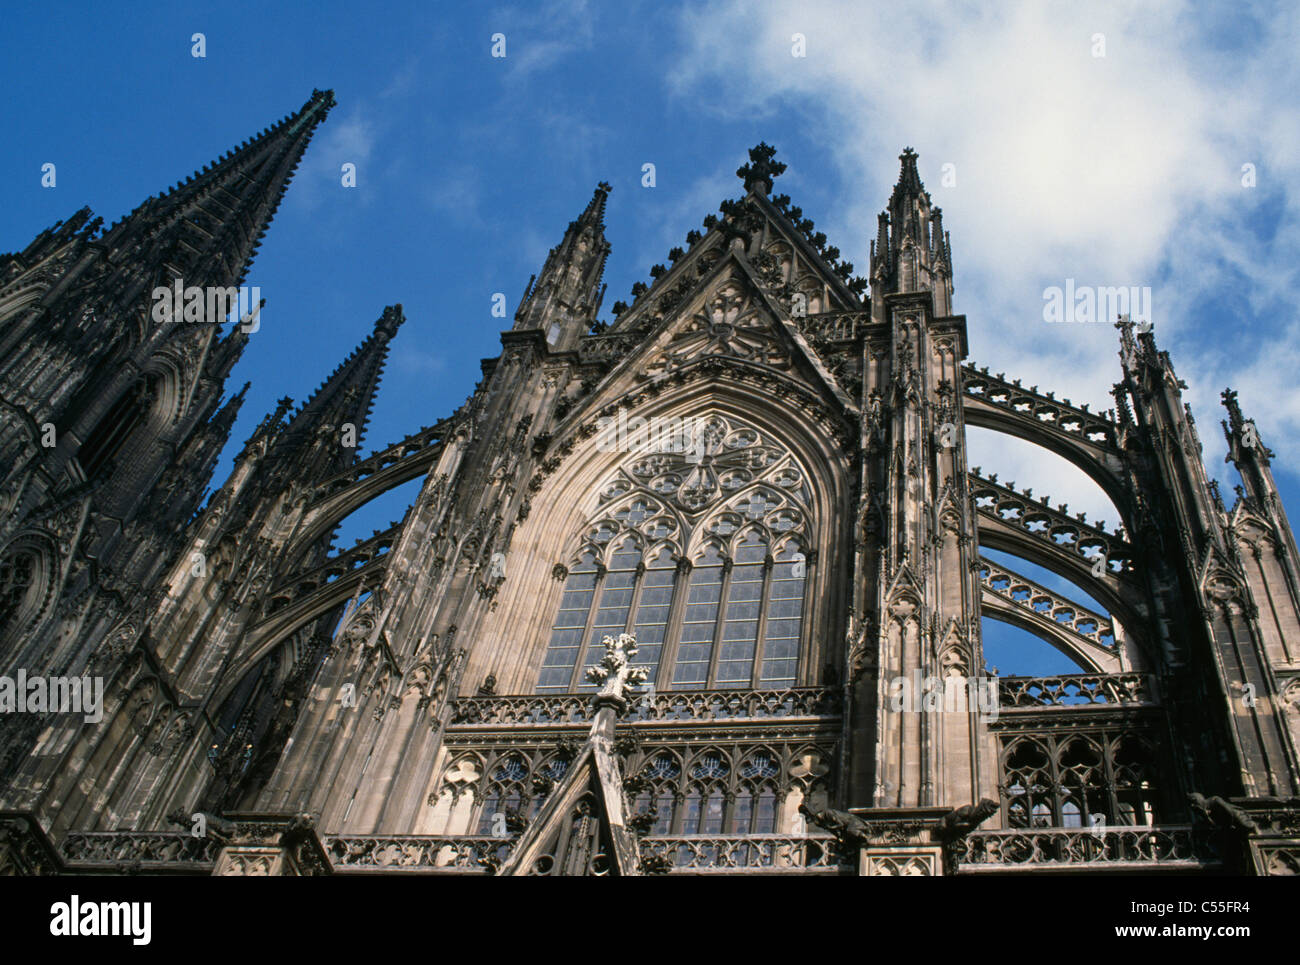 Allemagne, Cologne, Low angle view of cathedral Banque D'Images